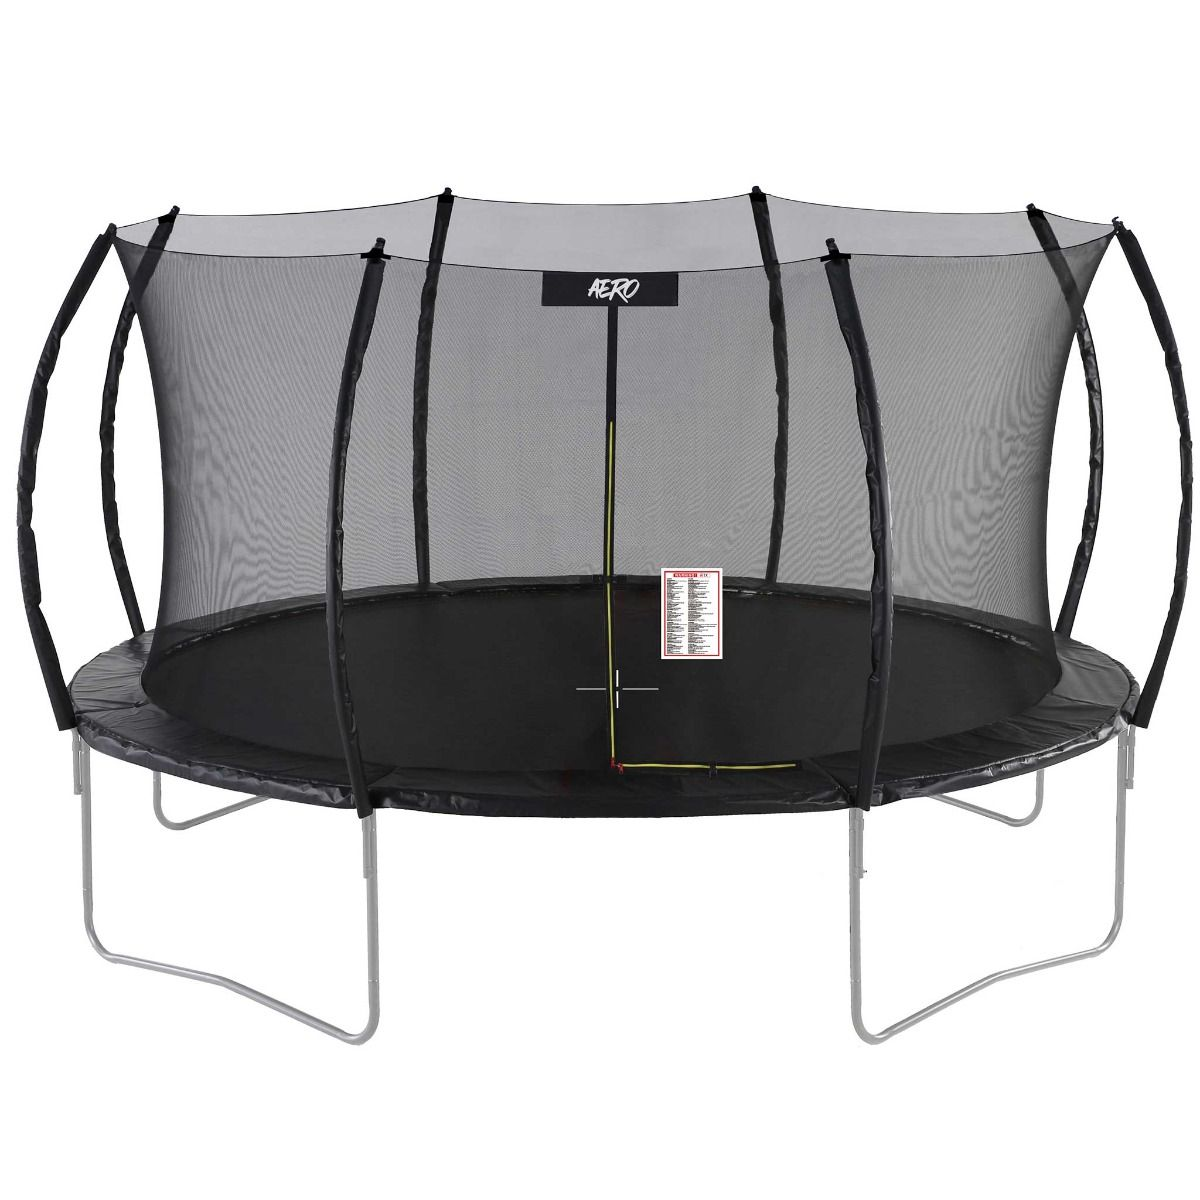 React Aero Trampoline 3,96m with a Safety Net